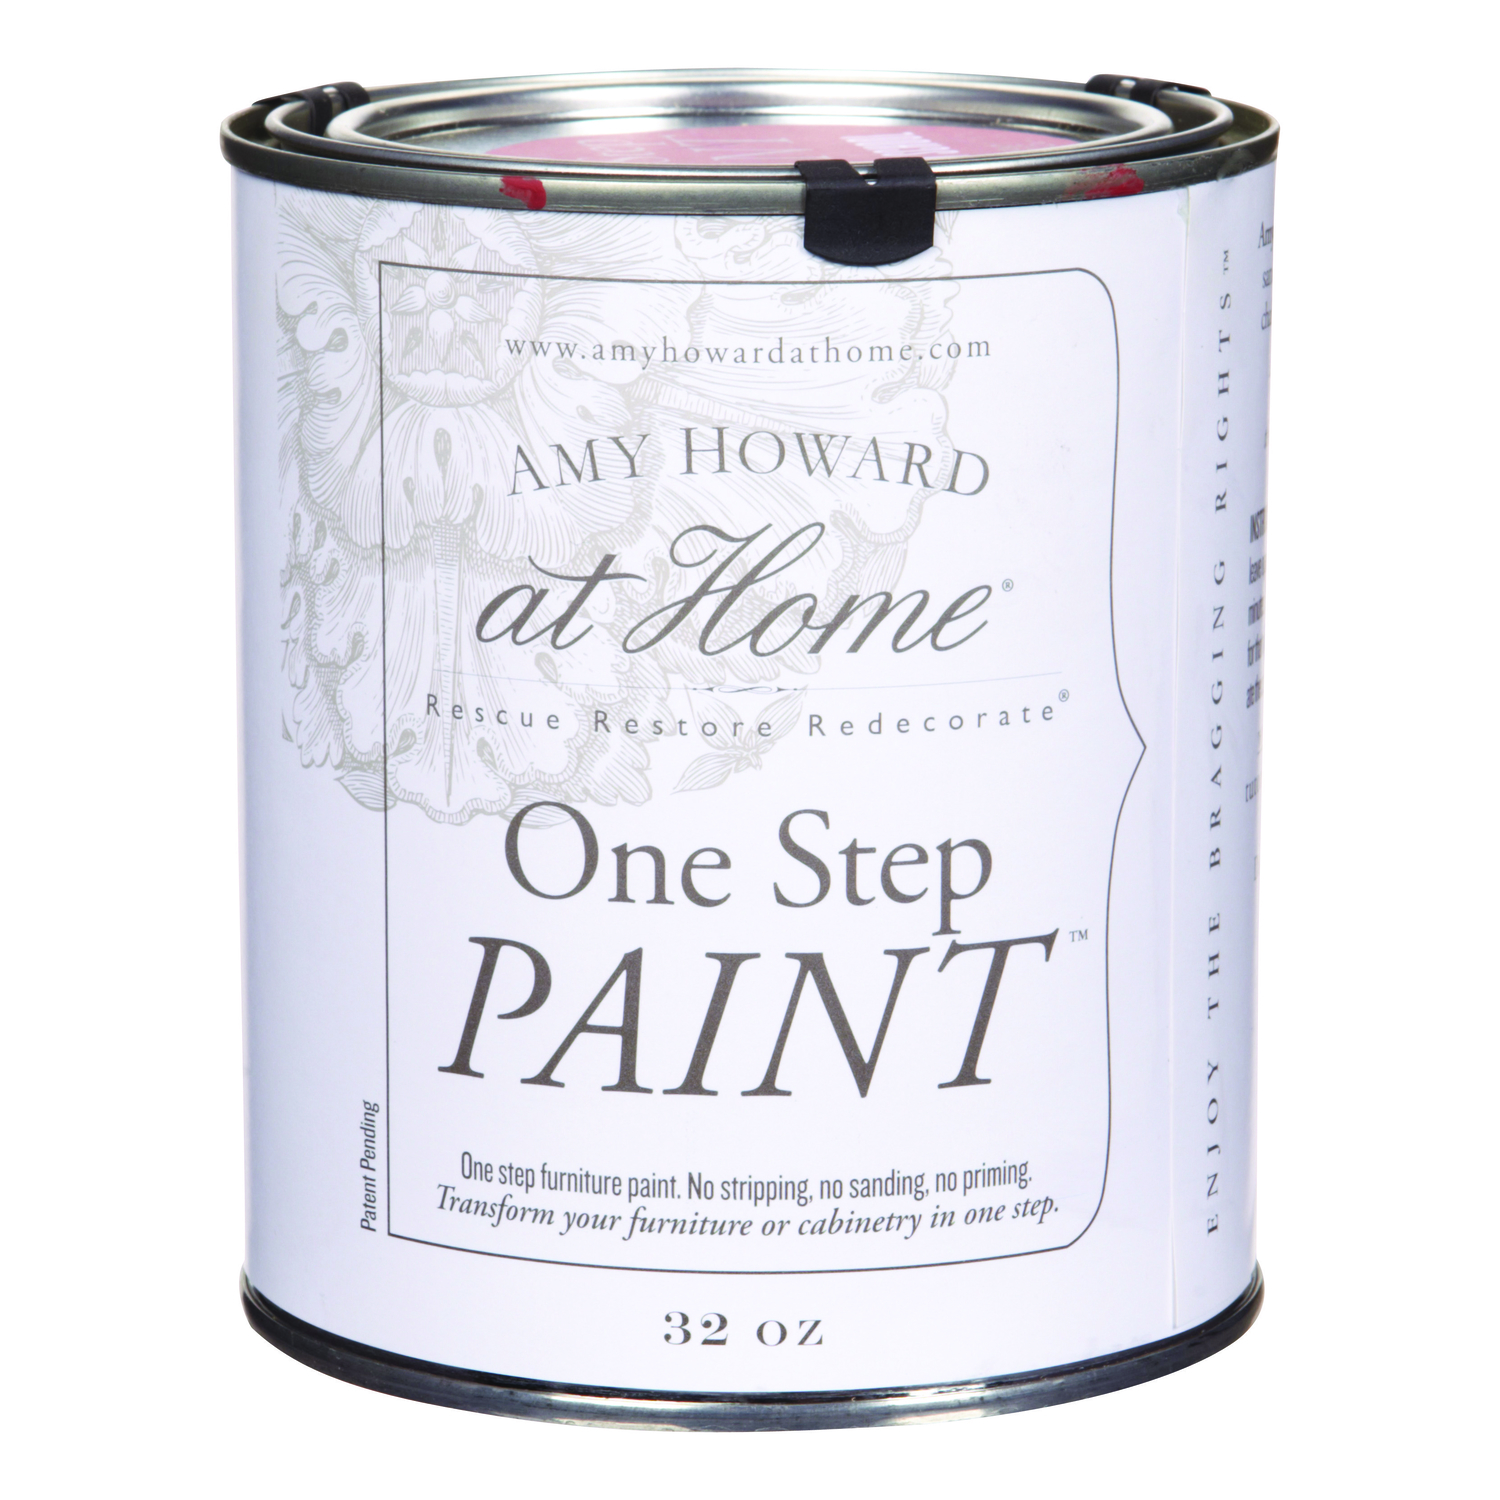 Amy Howard at Home  Flat Chalky Finish  Latex  One Step Paint  32 oz. Charm School